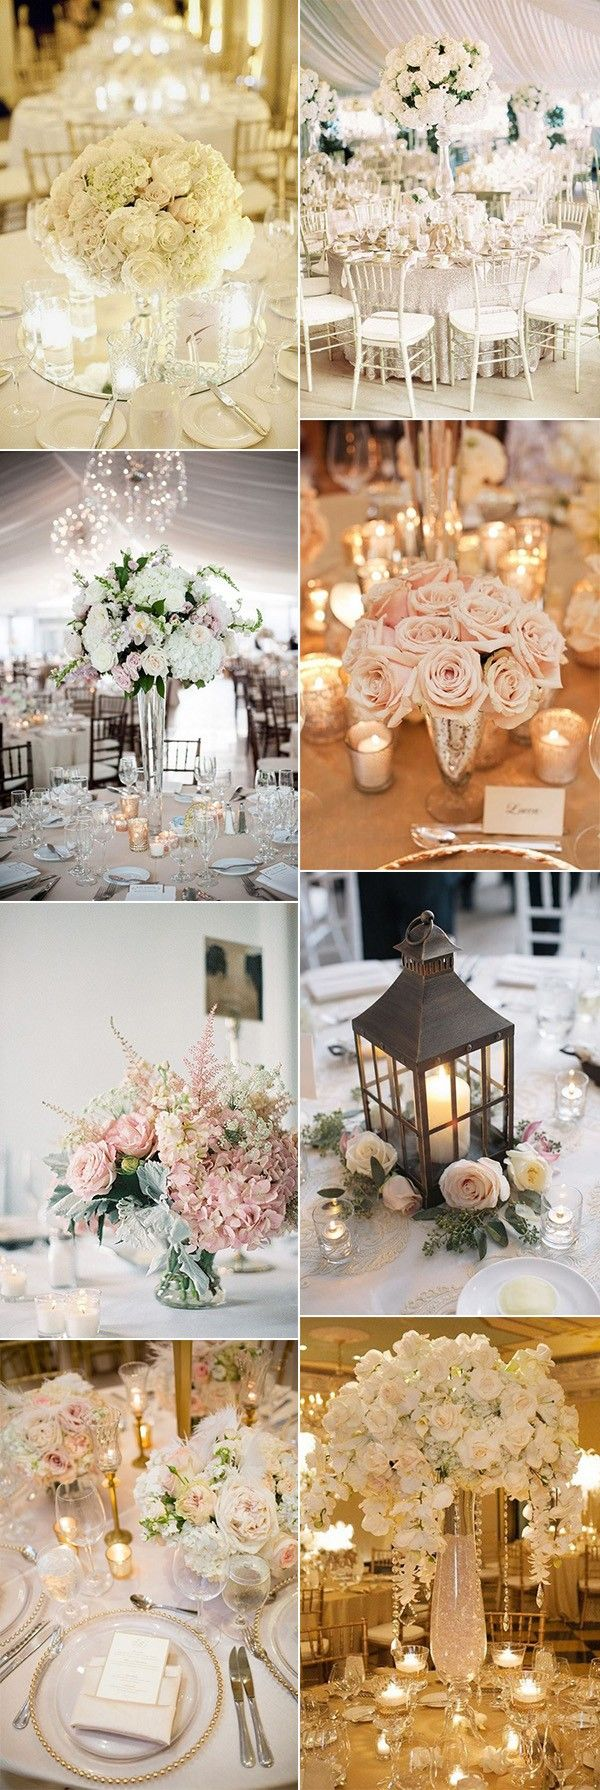 Elegant wedding decoration ideas   Elegant Wedding Centerpiece Ideas for  Trends  Wedd